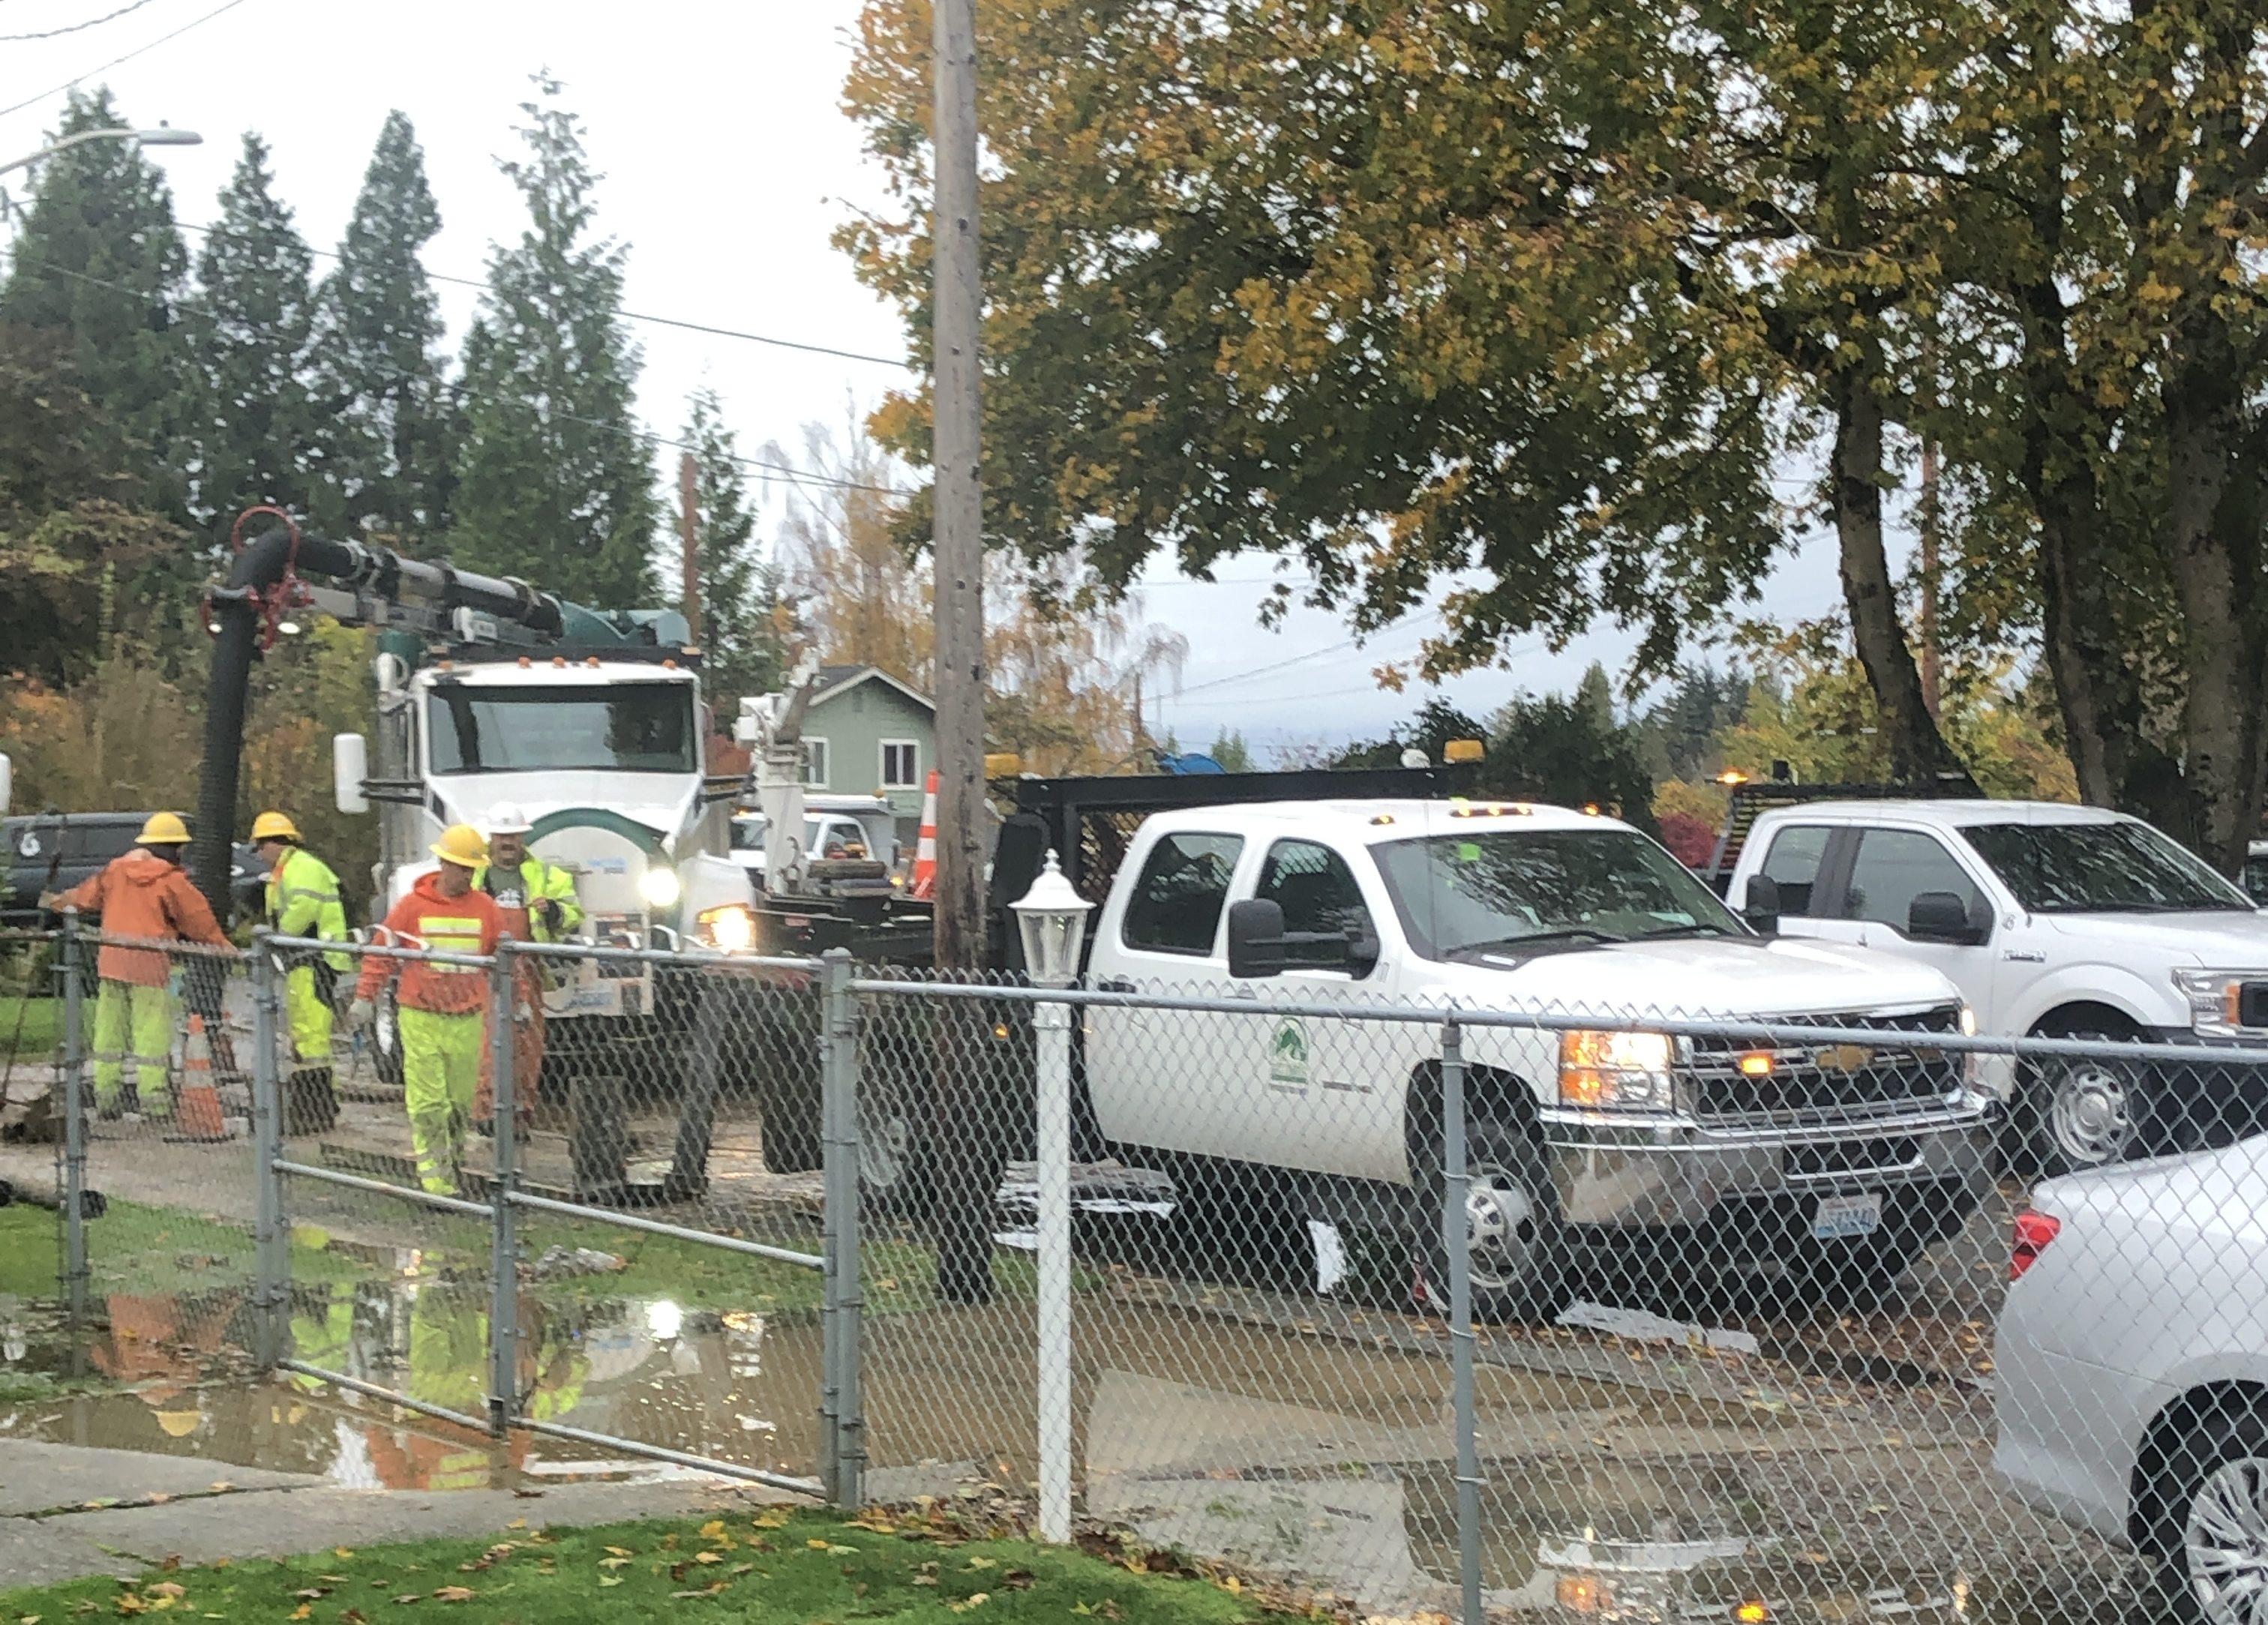 A City of Ferndale Public Works crew works to repair a water main break on Madrona Drive (October 20, 2019). Photo: Joe Tuttle